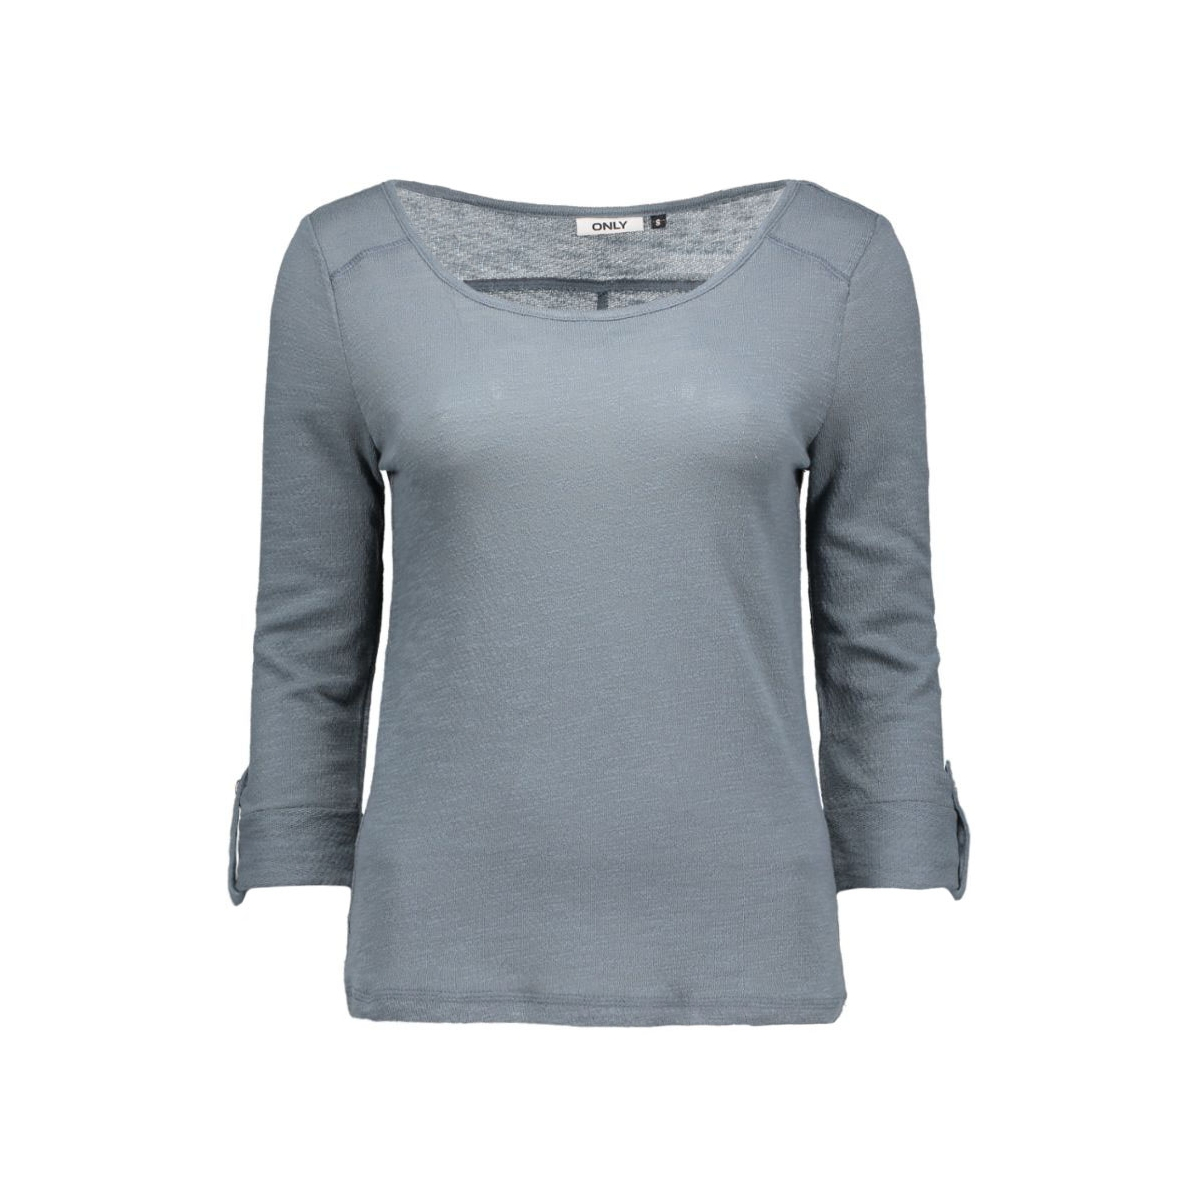 onljess 3/4 top jrs noos 15096632 only t-shirt stormy weather